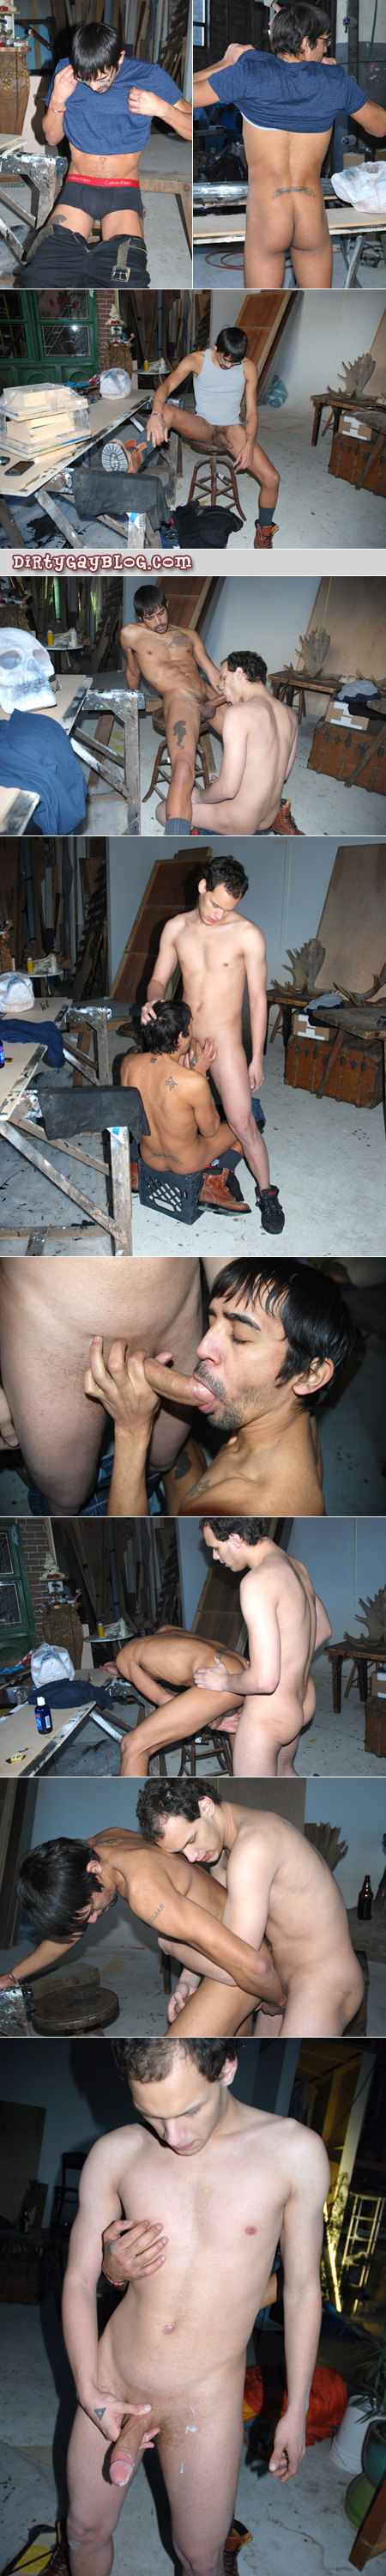 Young tattooed guy gets caught masturbating by another guy in a warehouse workshop.